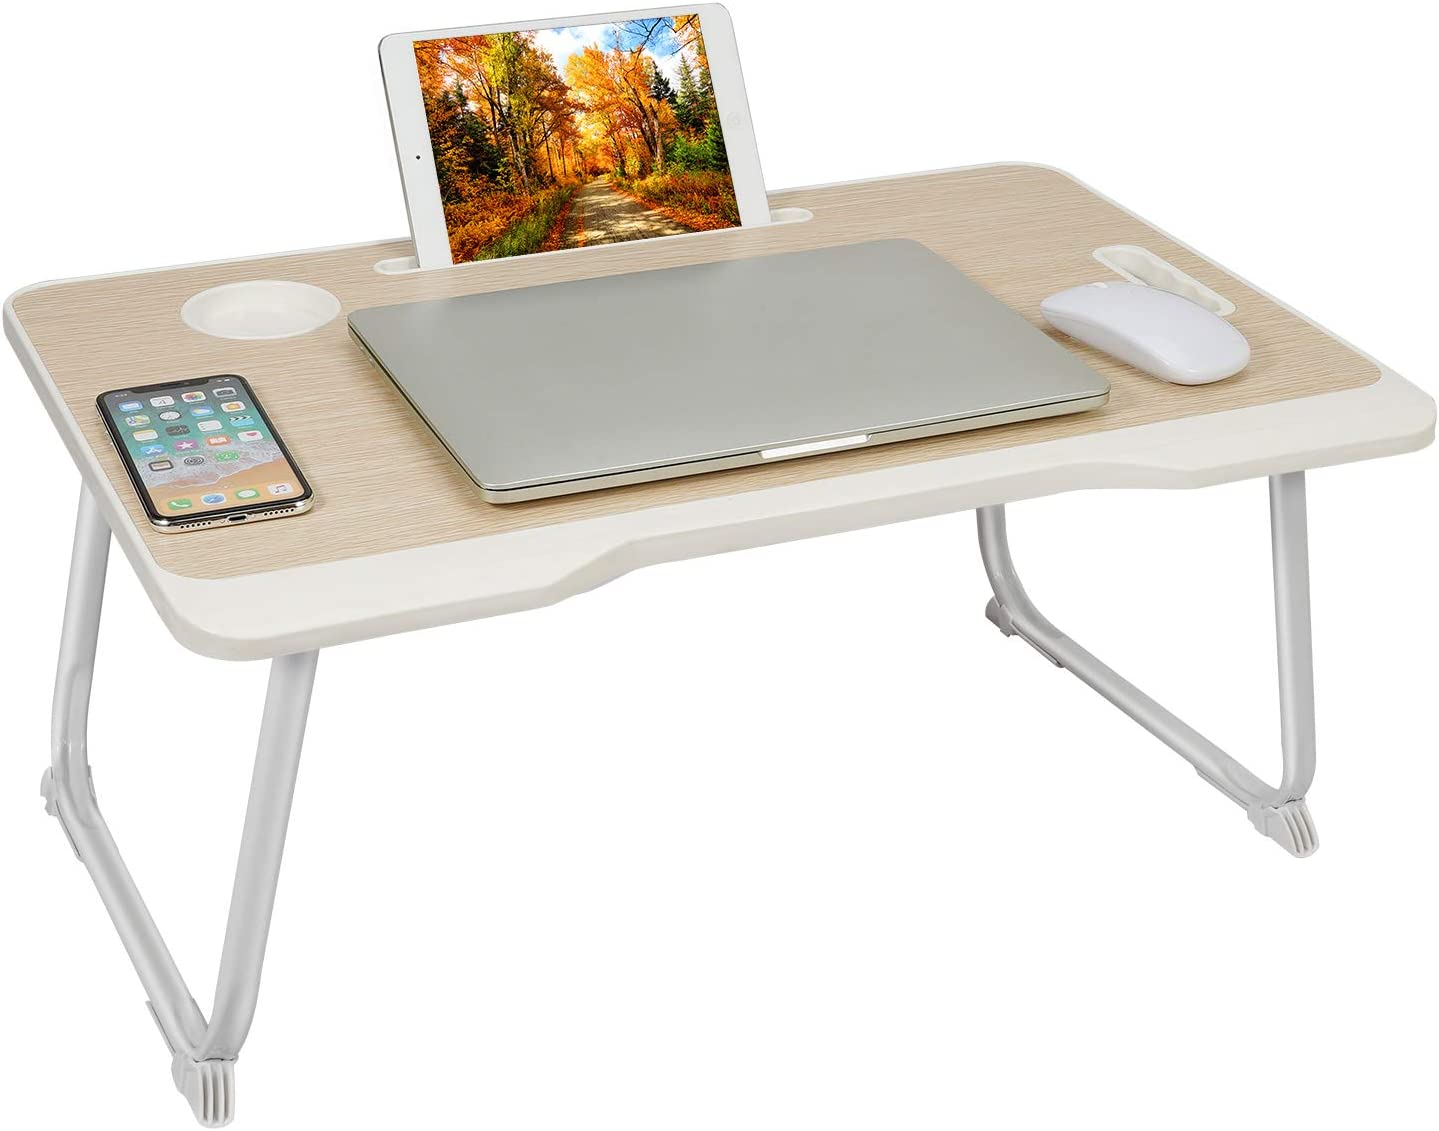 Phyllia Laptop Bed Tray Table,Foldable Lap Desk Stand with Cup Holder Home Office Lightweight Table for Eating, Working, Writing, Gaming, Drawing (Light Brown)